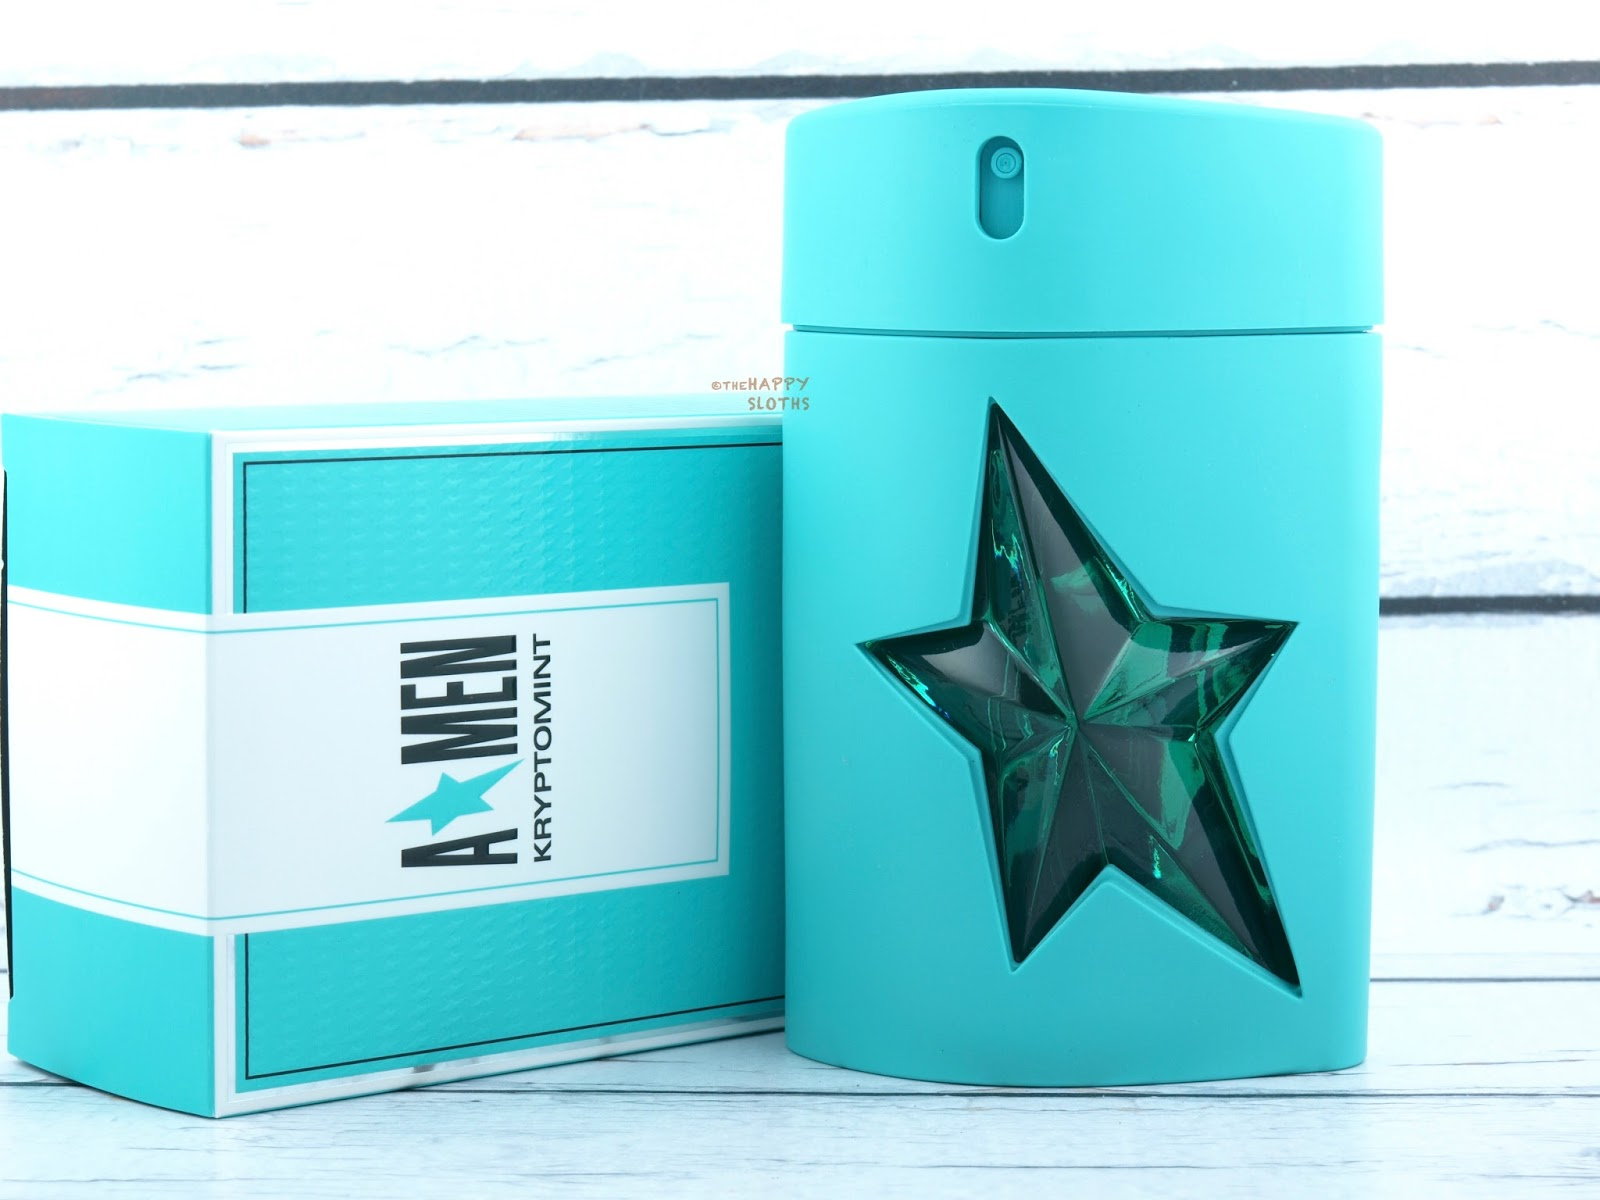 Mugler A*Men Kryptomint Eau de Toilette: Review